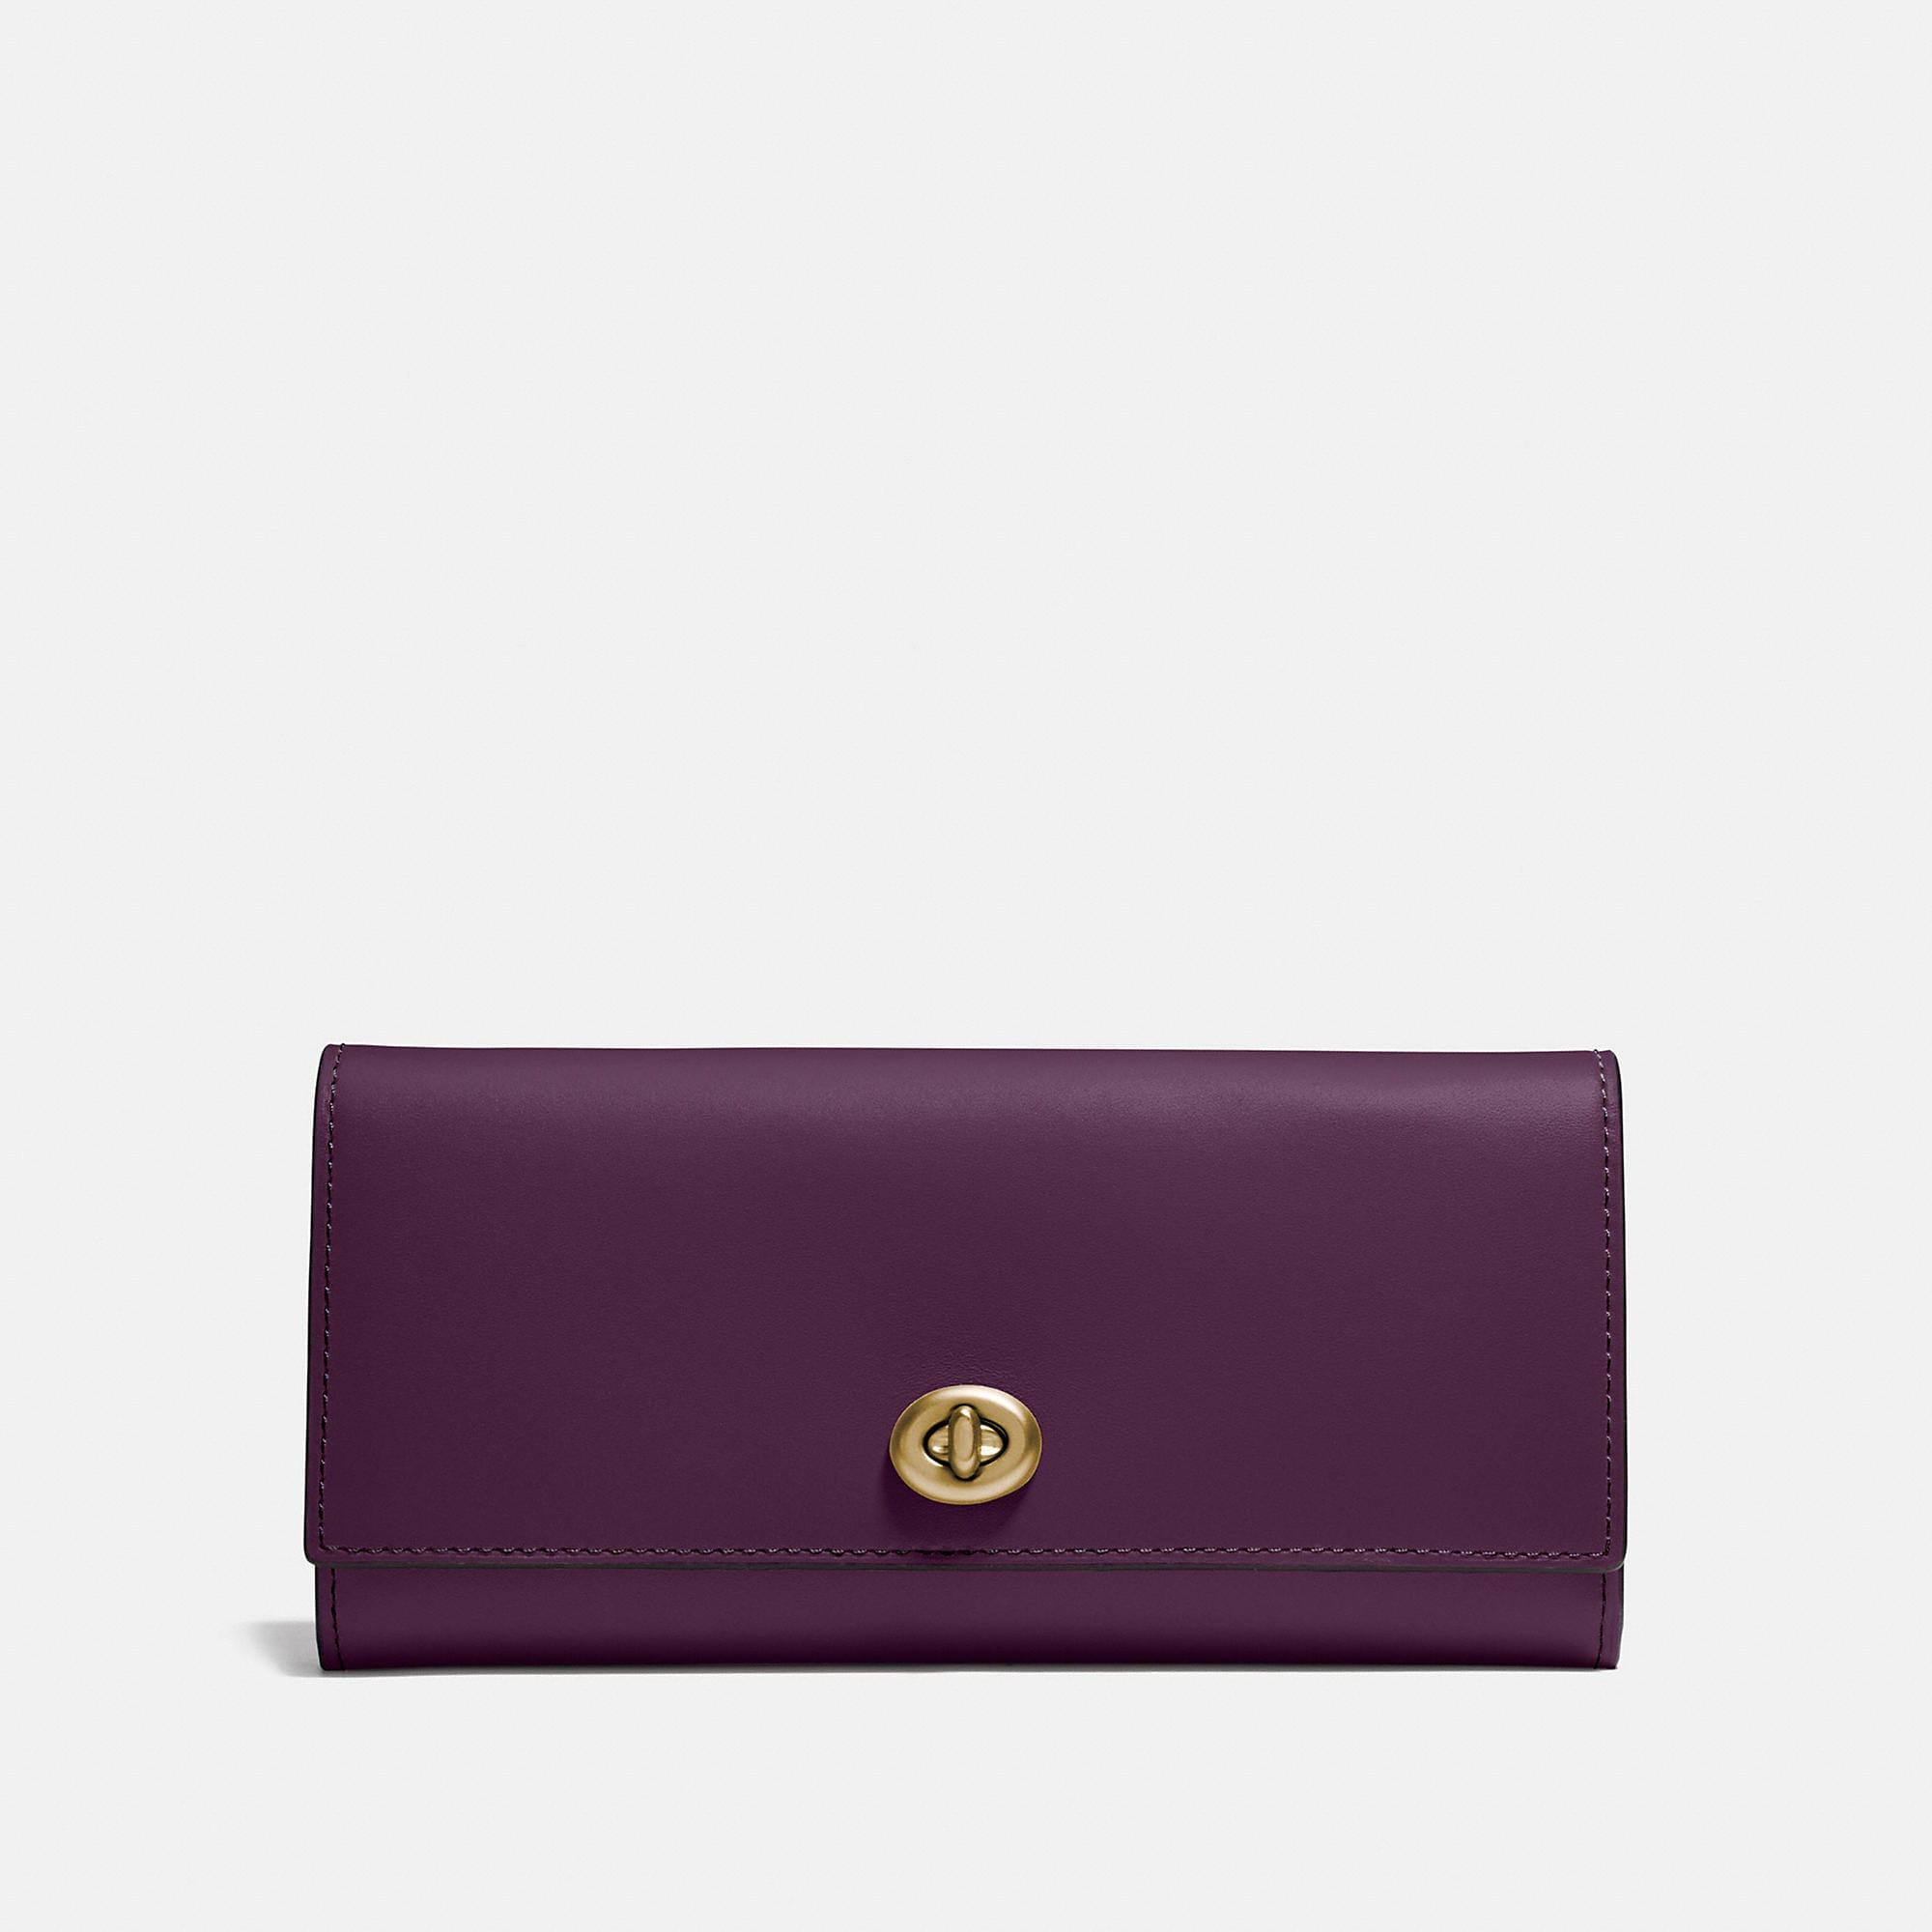 Coach Envelope Wallet